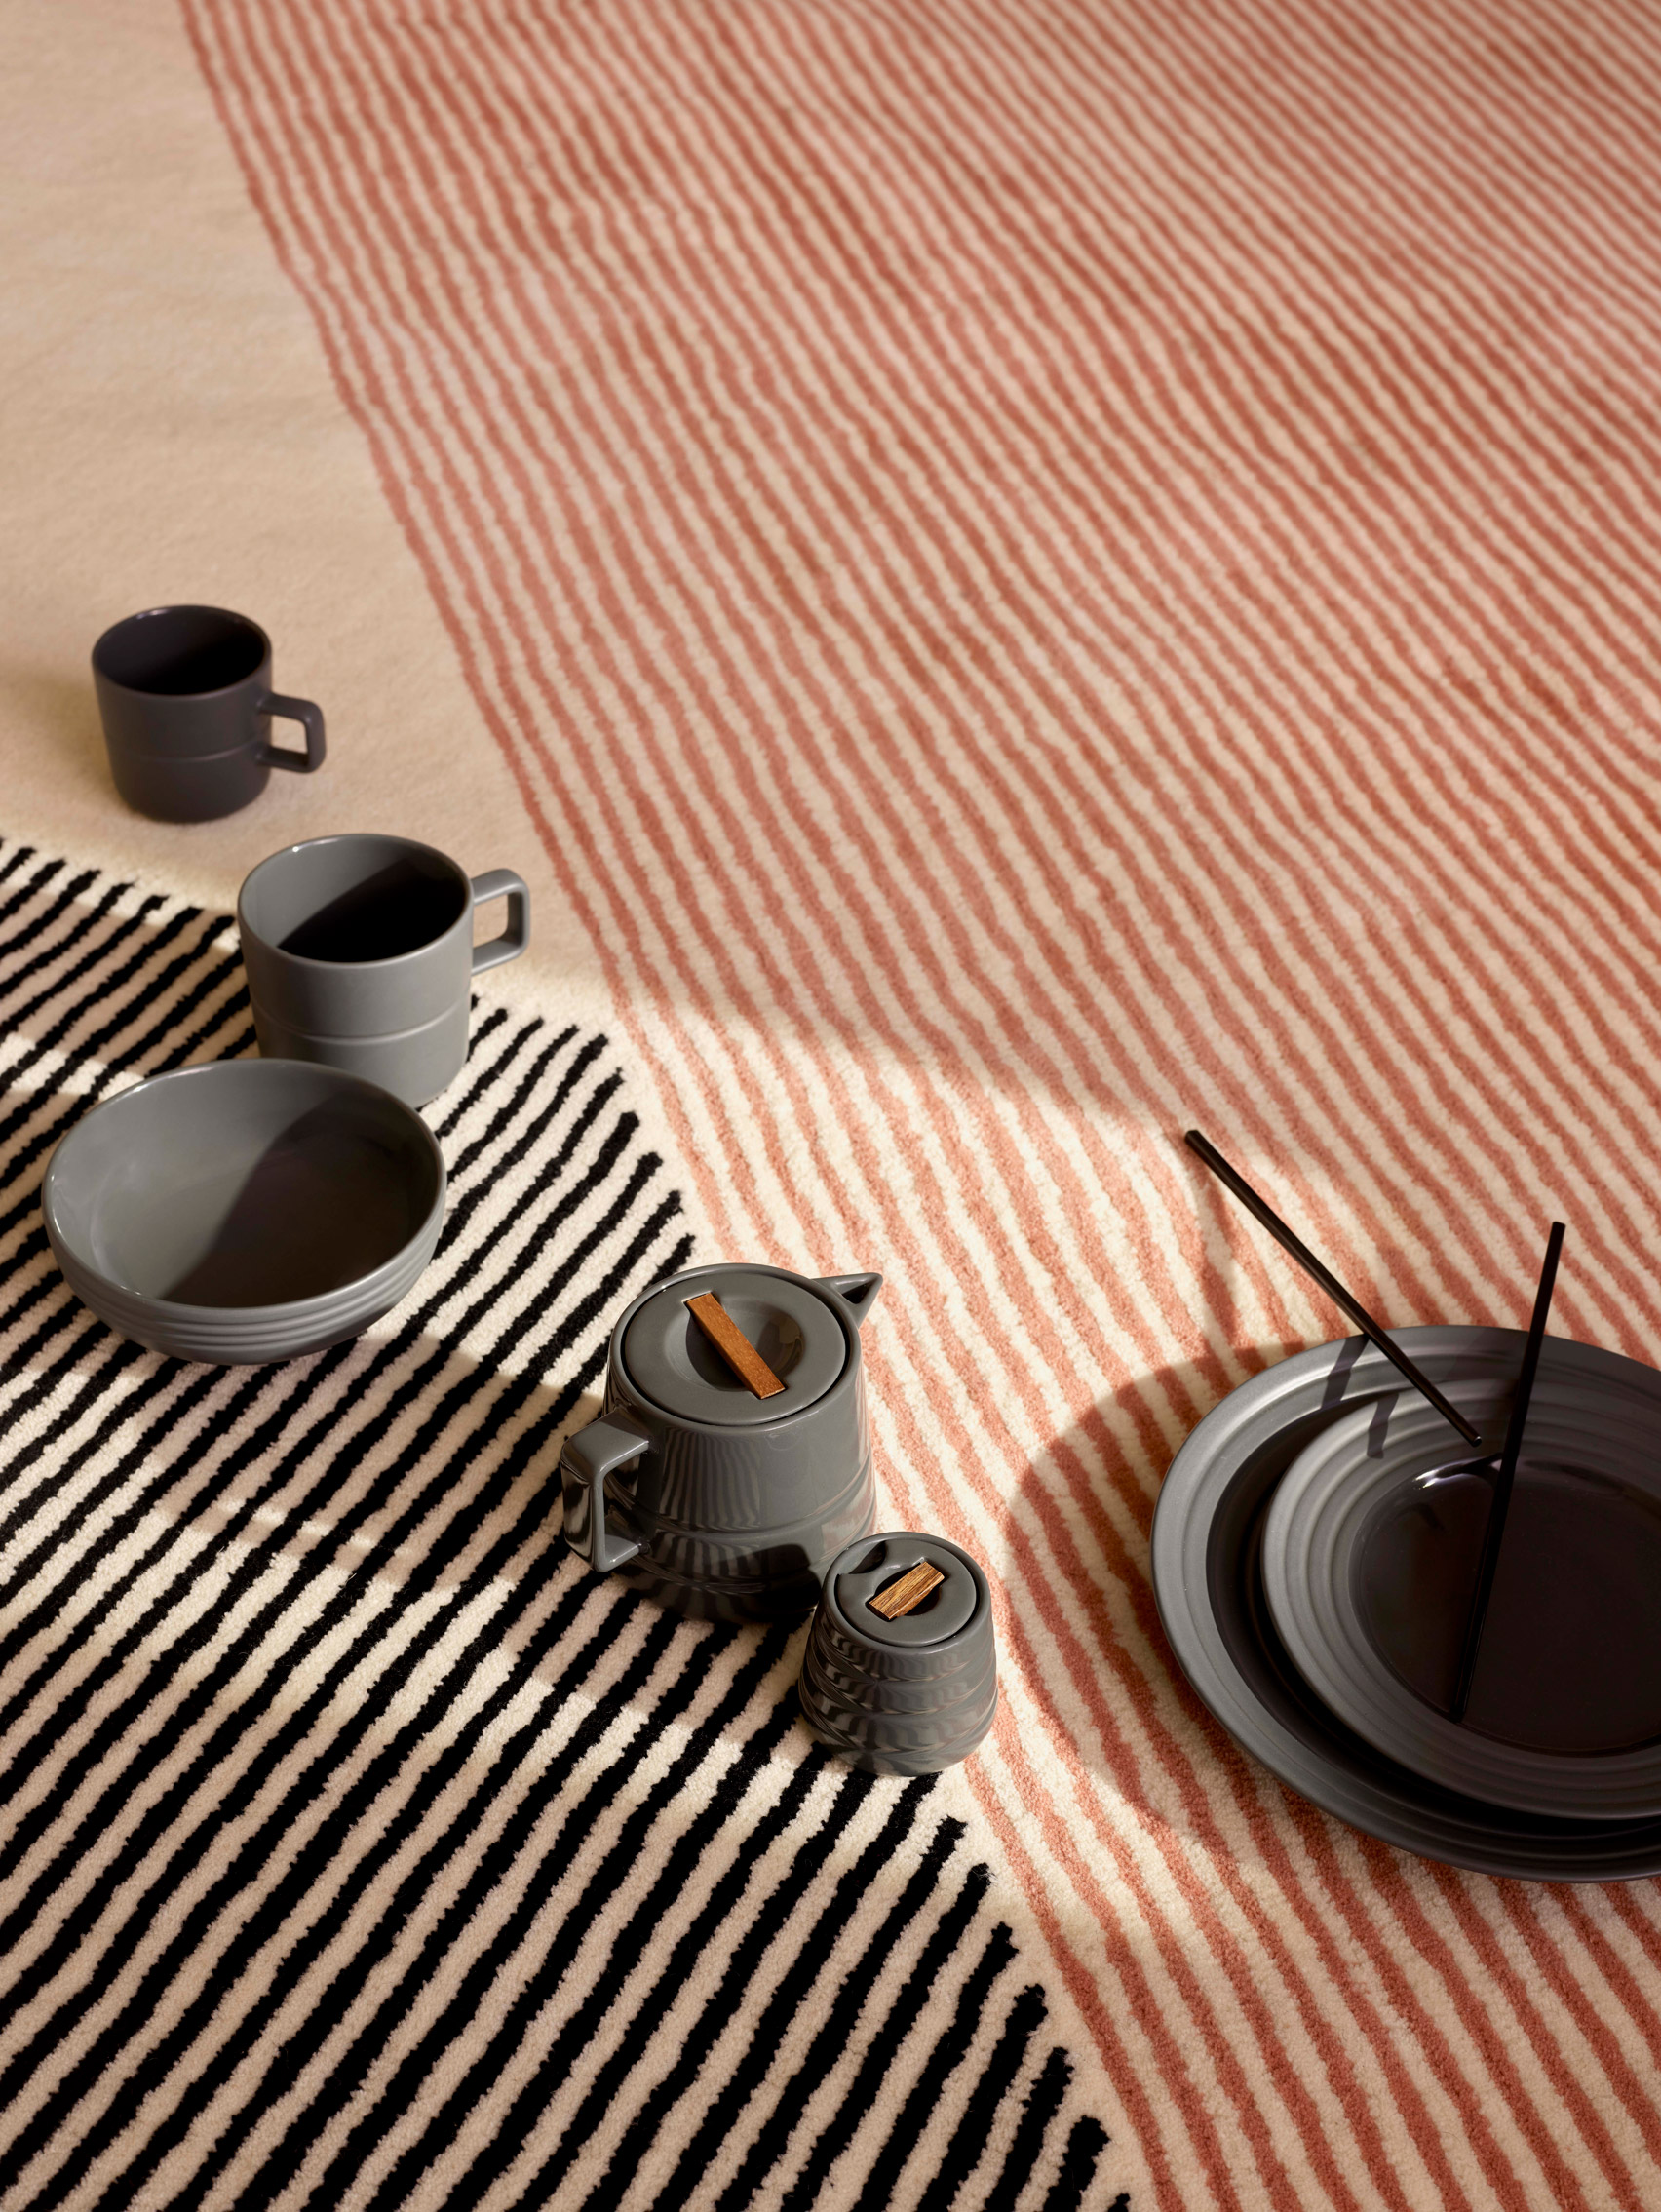 Stripes rugs collection by NJRD